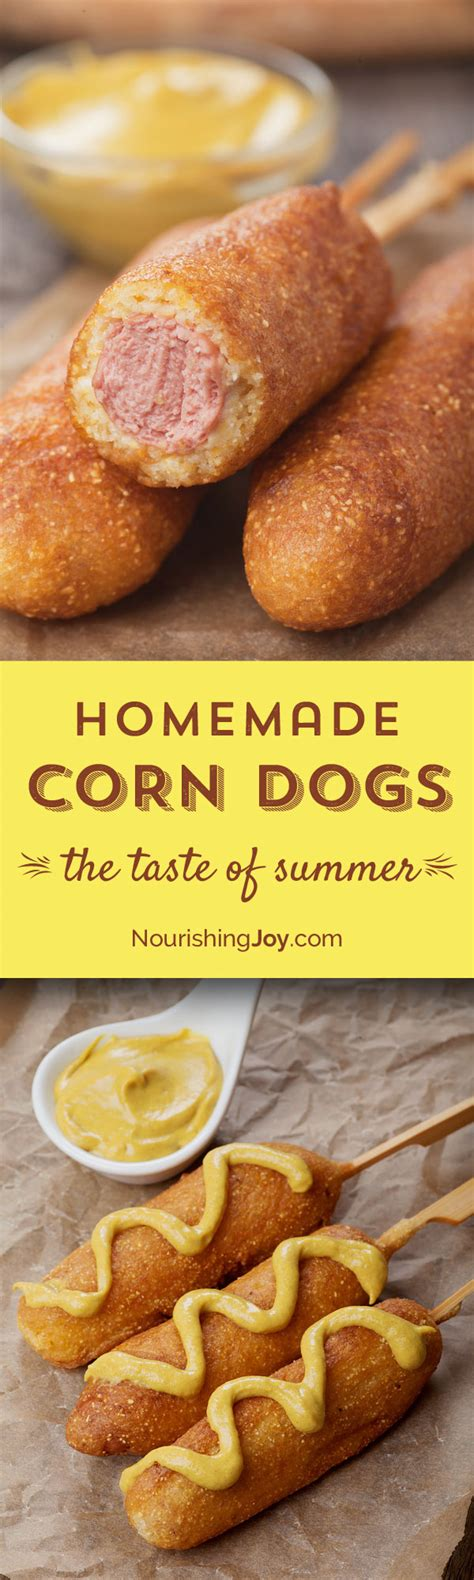 is corn bad for dogs corn dogs nourishing